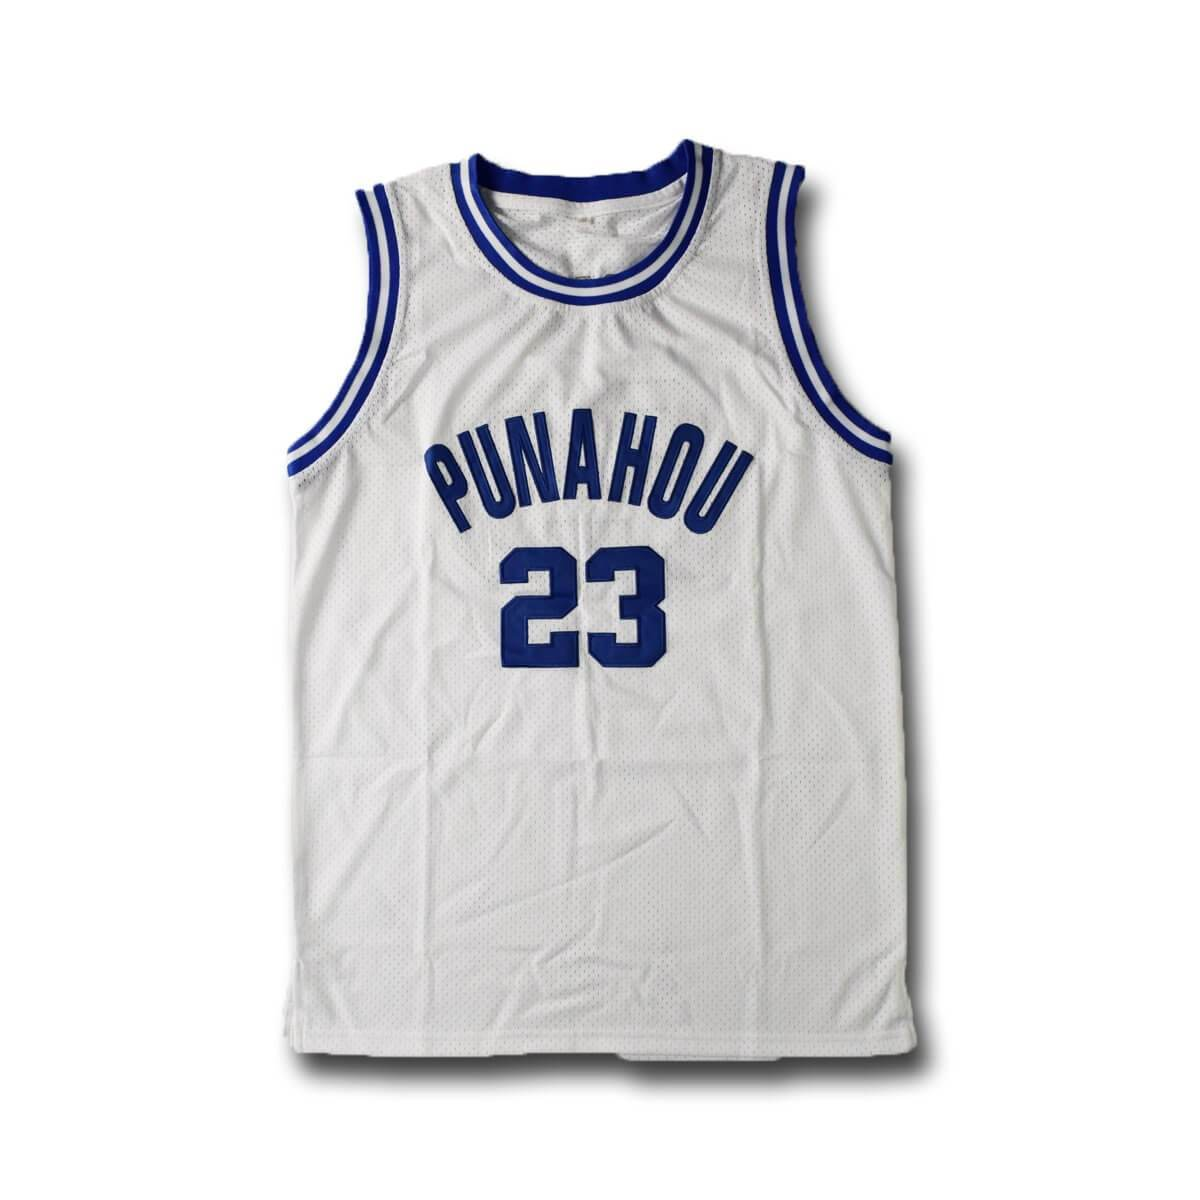 Barack Obama Punahou High School Basketball Jersey